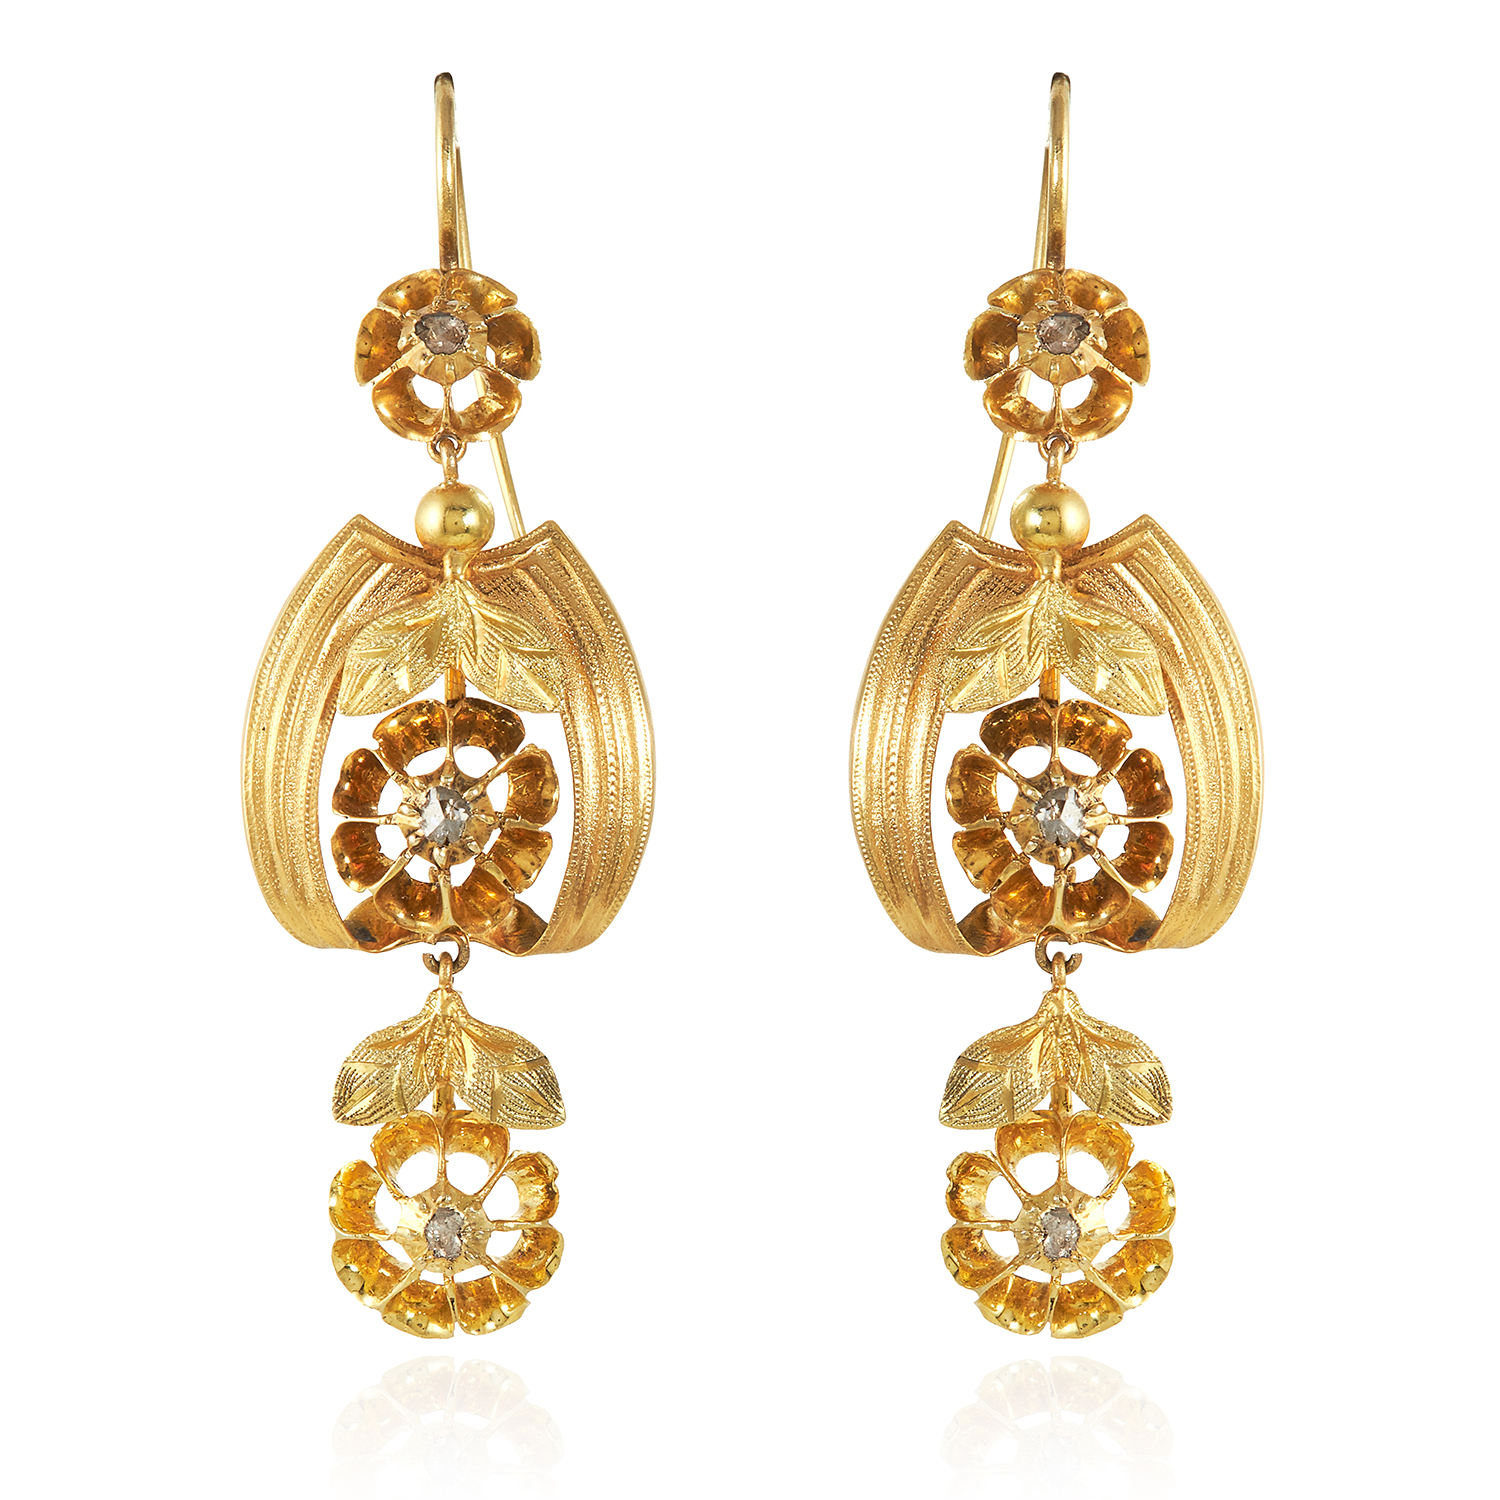 Los 302 - A PAIR OF ANTIQUE DIAMOND EARRINGS, 19TH CENTURY in high carat yellow gold, the articulated bodies